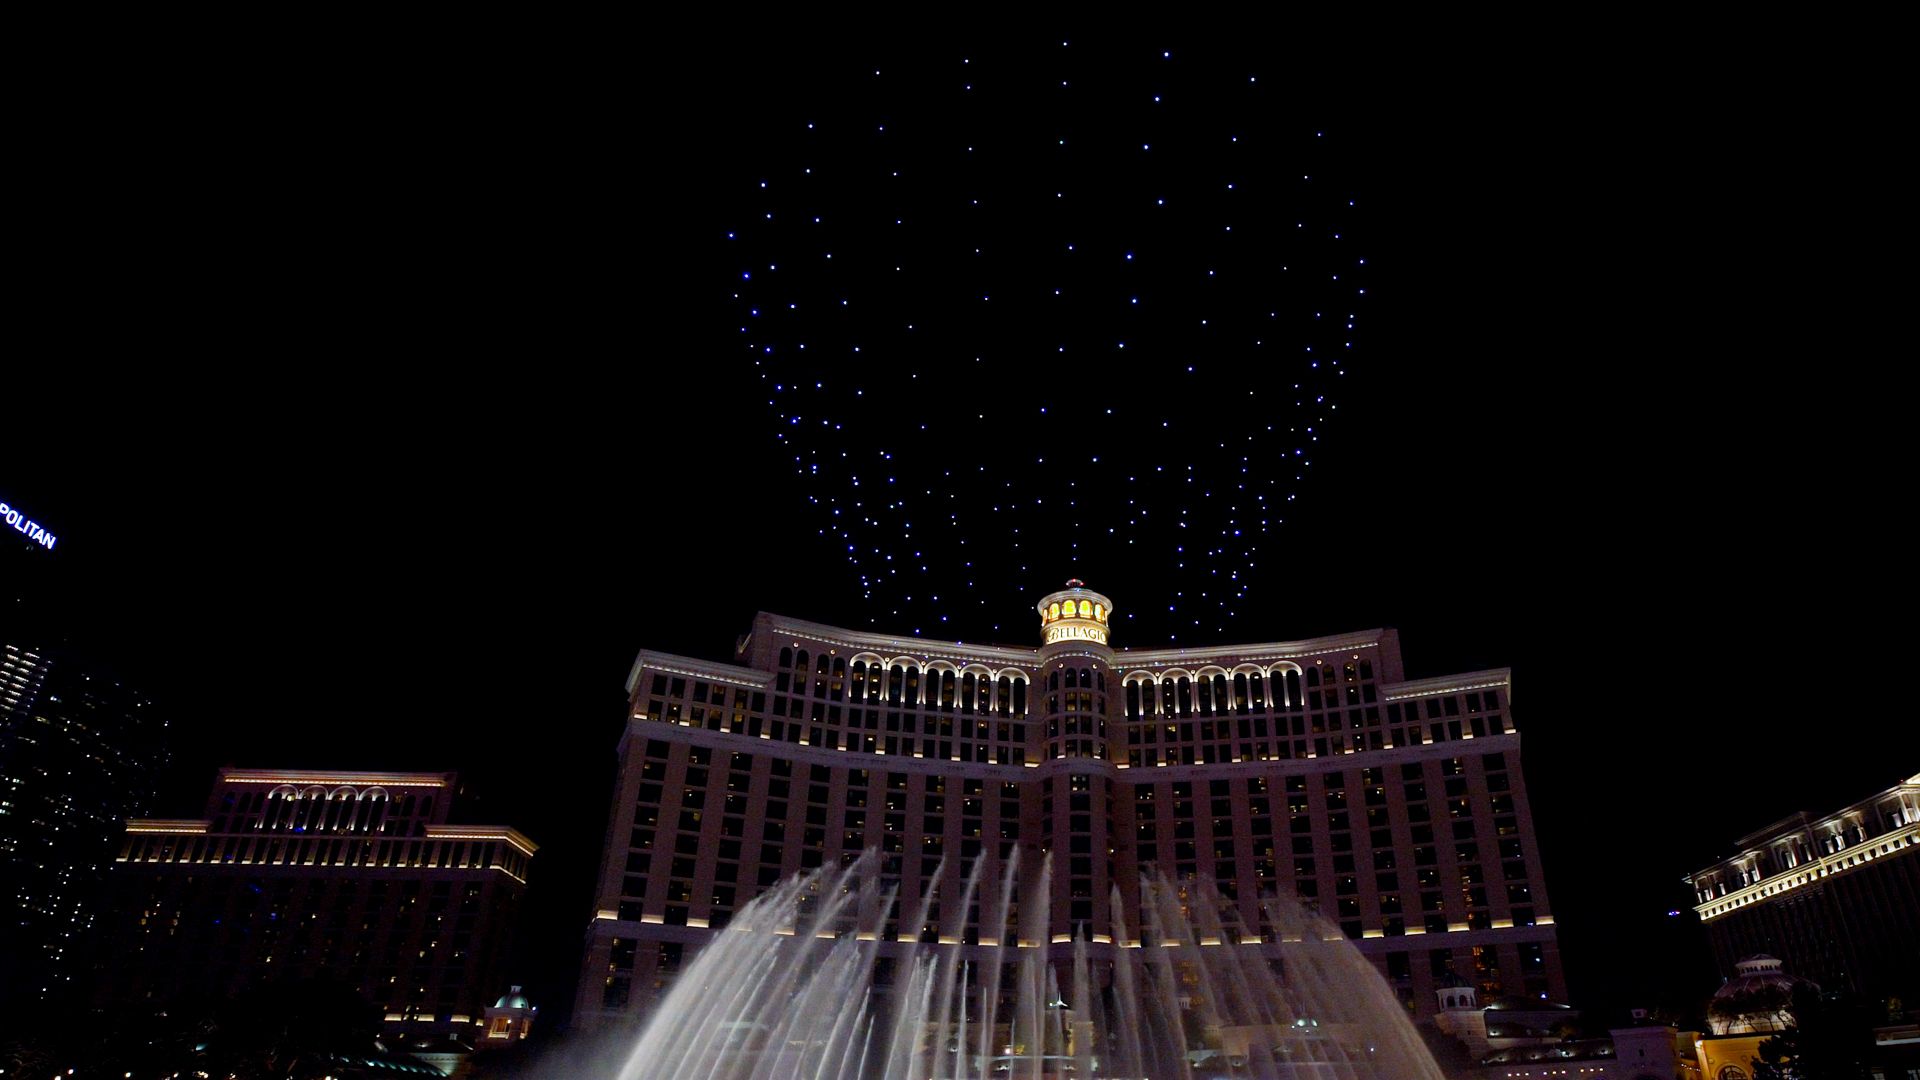 Intel-Lighshow-Bellagio-2-2